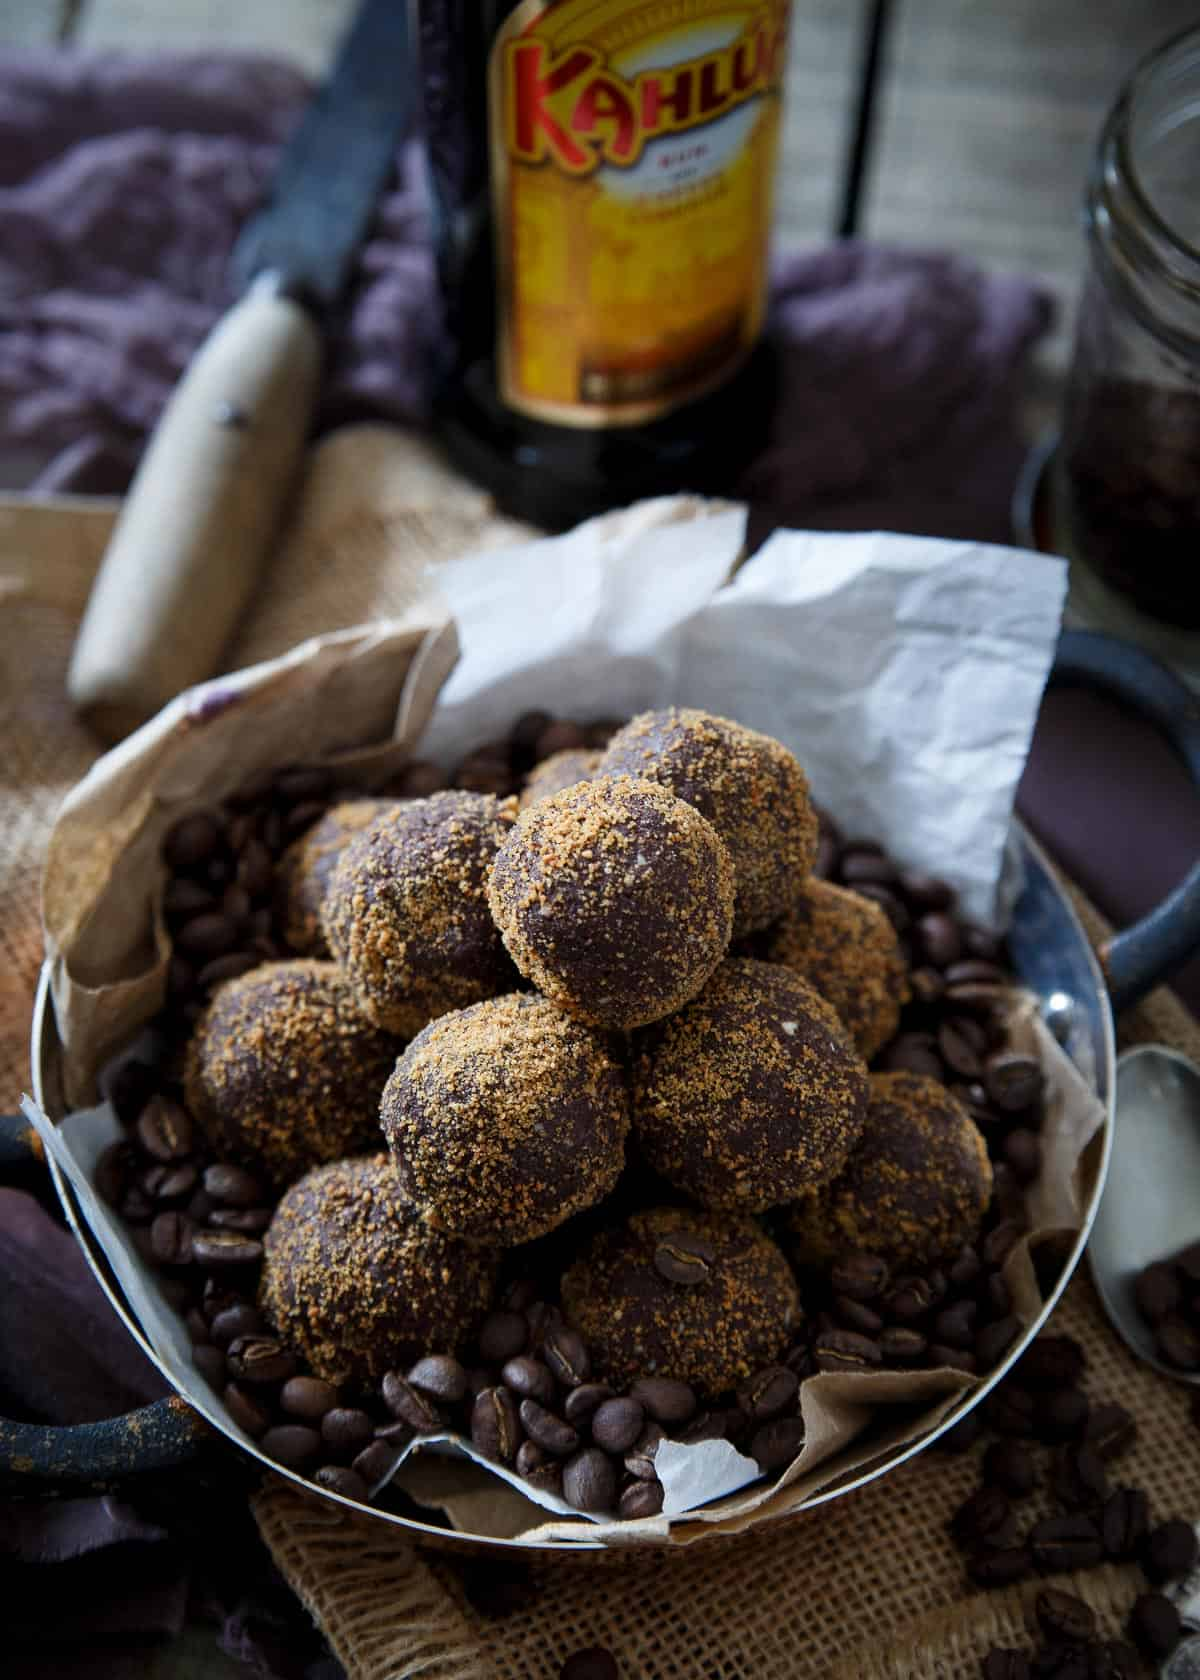 These grain free, gluten free dark chocolate Kahlua coffee bites are like biting into a decadent truffle except without the guilt.